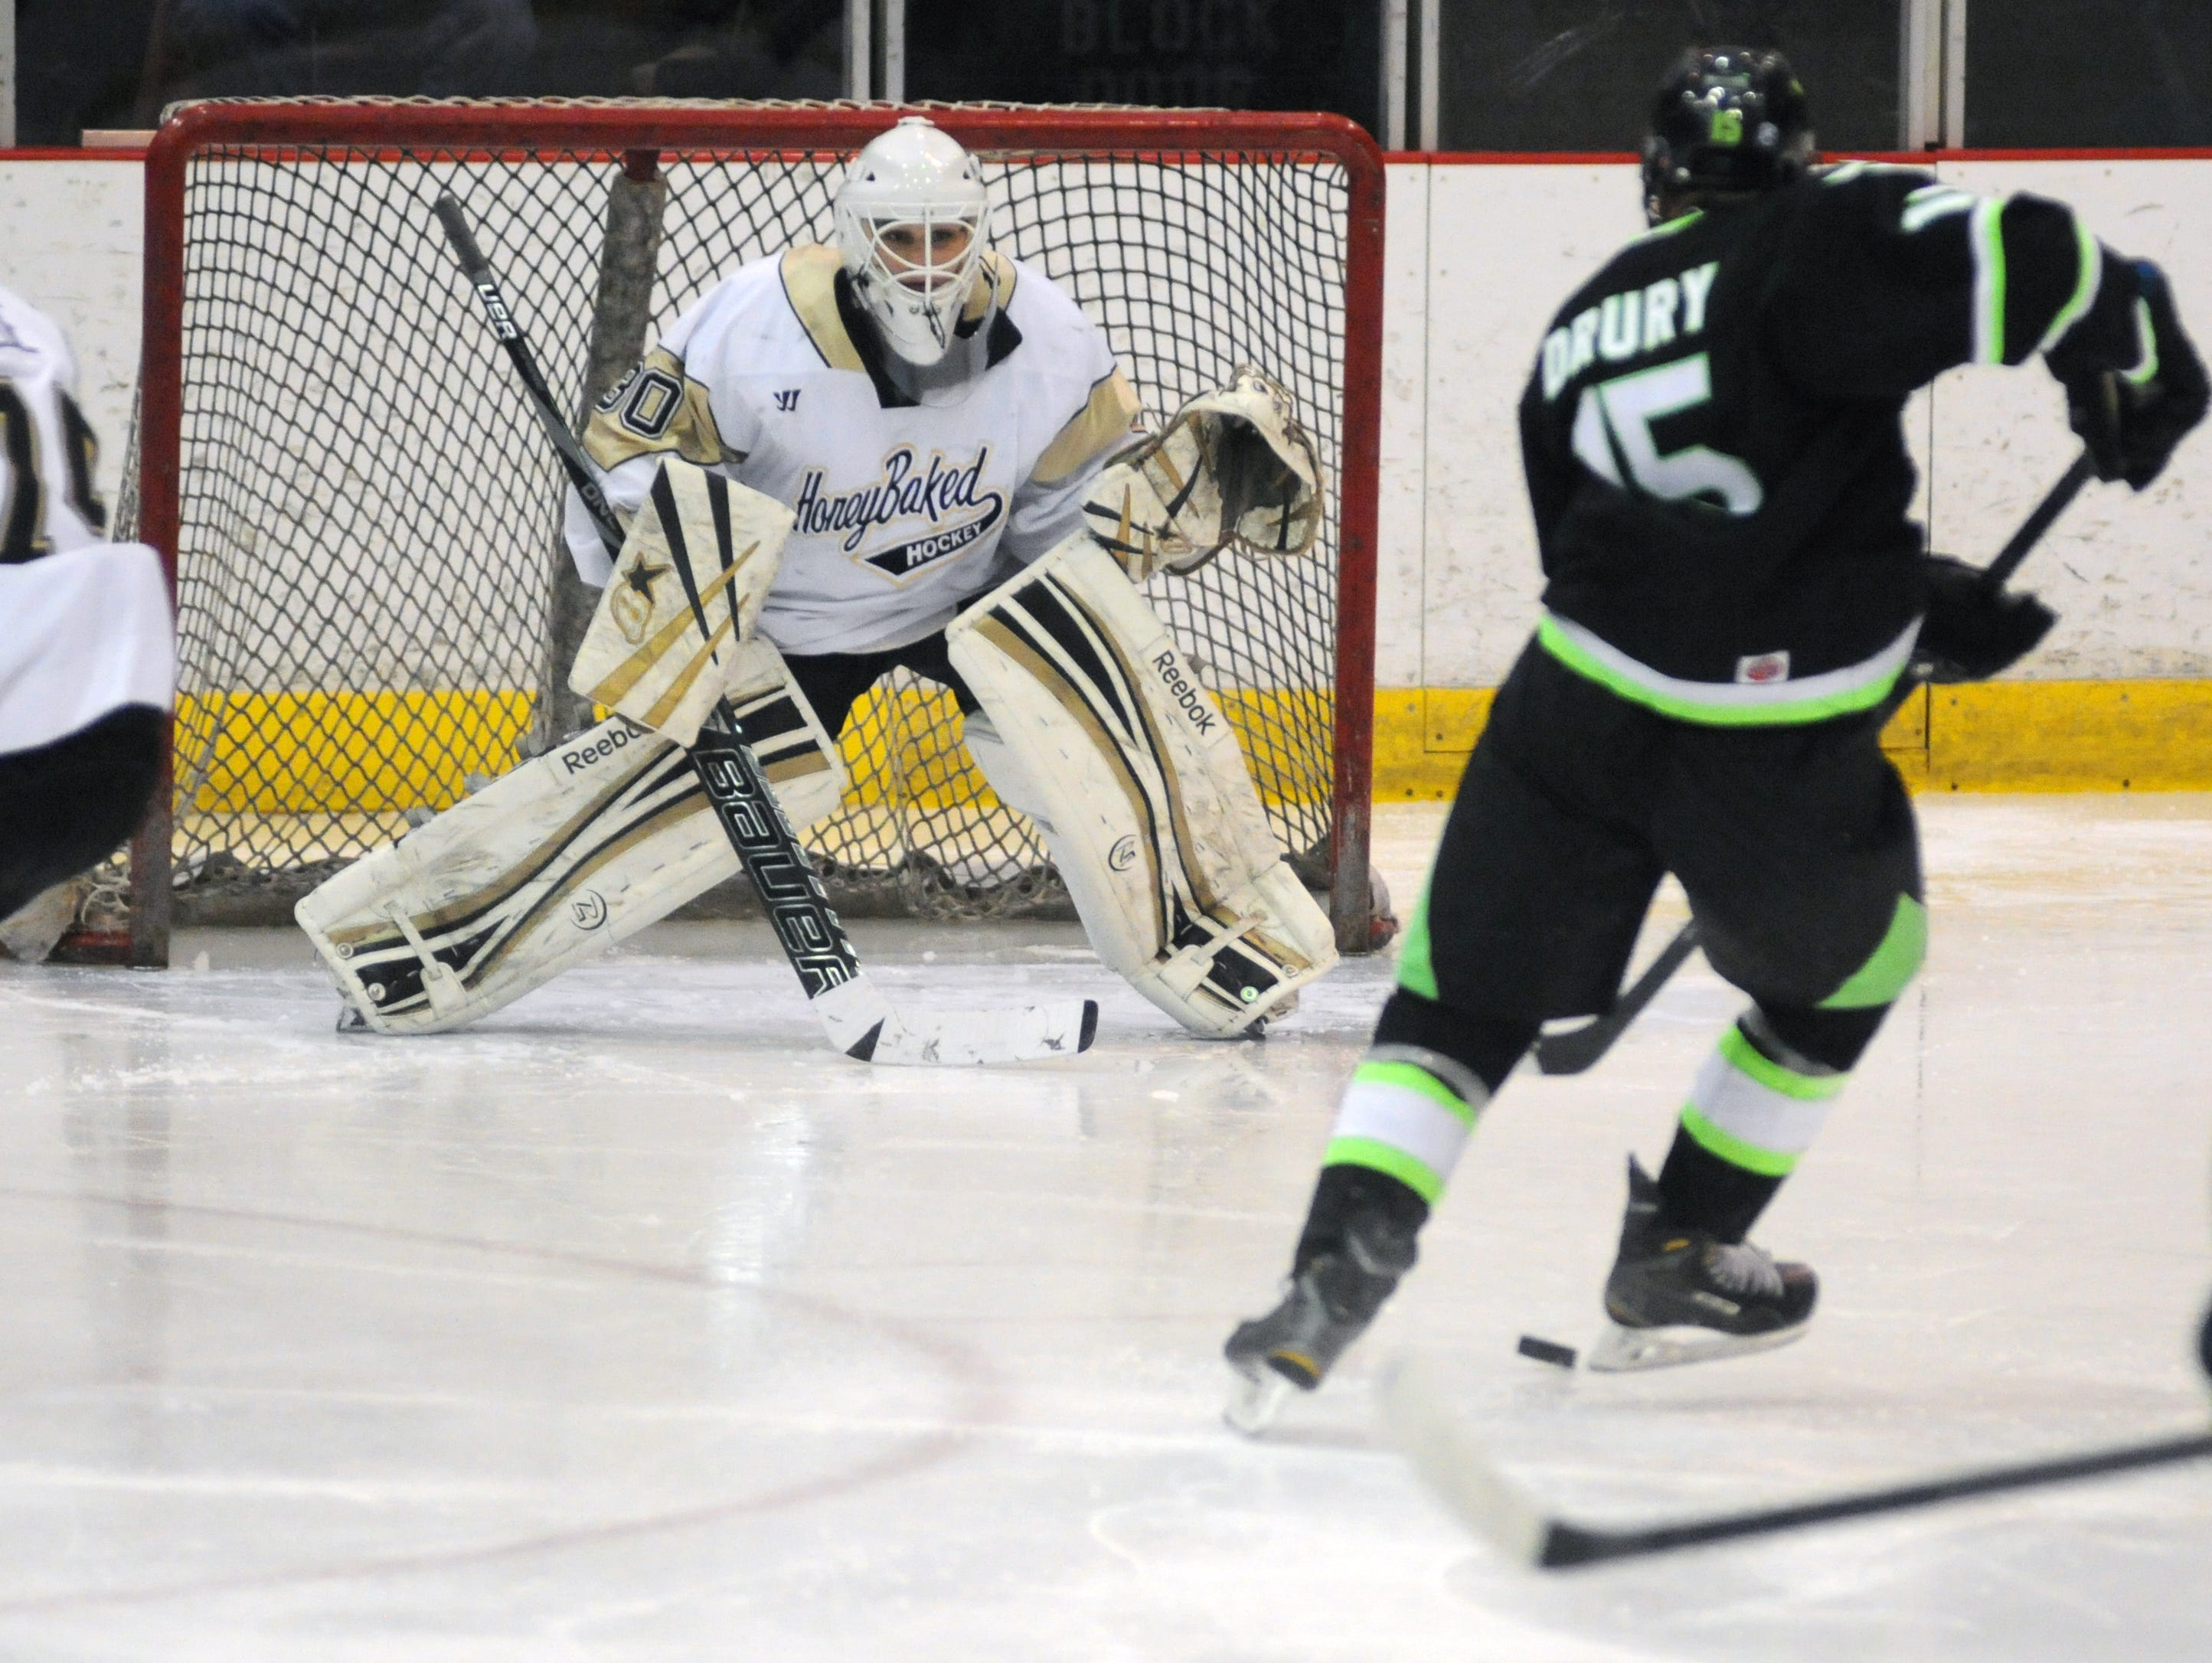 Honeybaked goaltender, Christian Stoever eyes the puck Sunday, Jan 11 during the Bantam AAA Silver Stick Finals championship game.